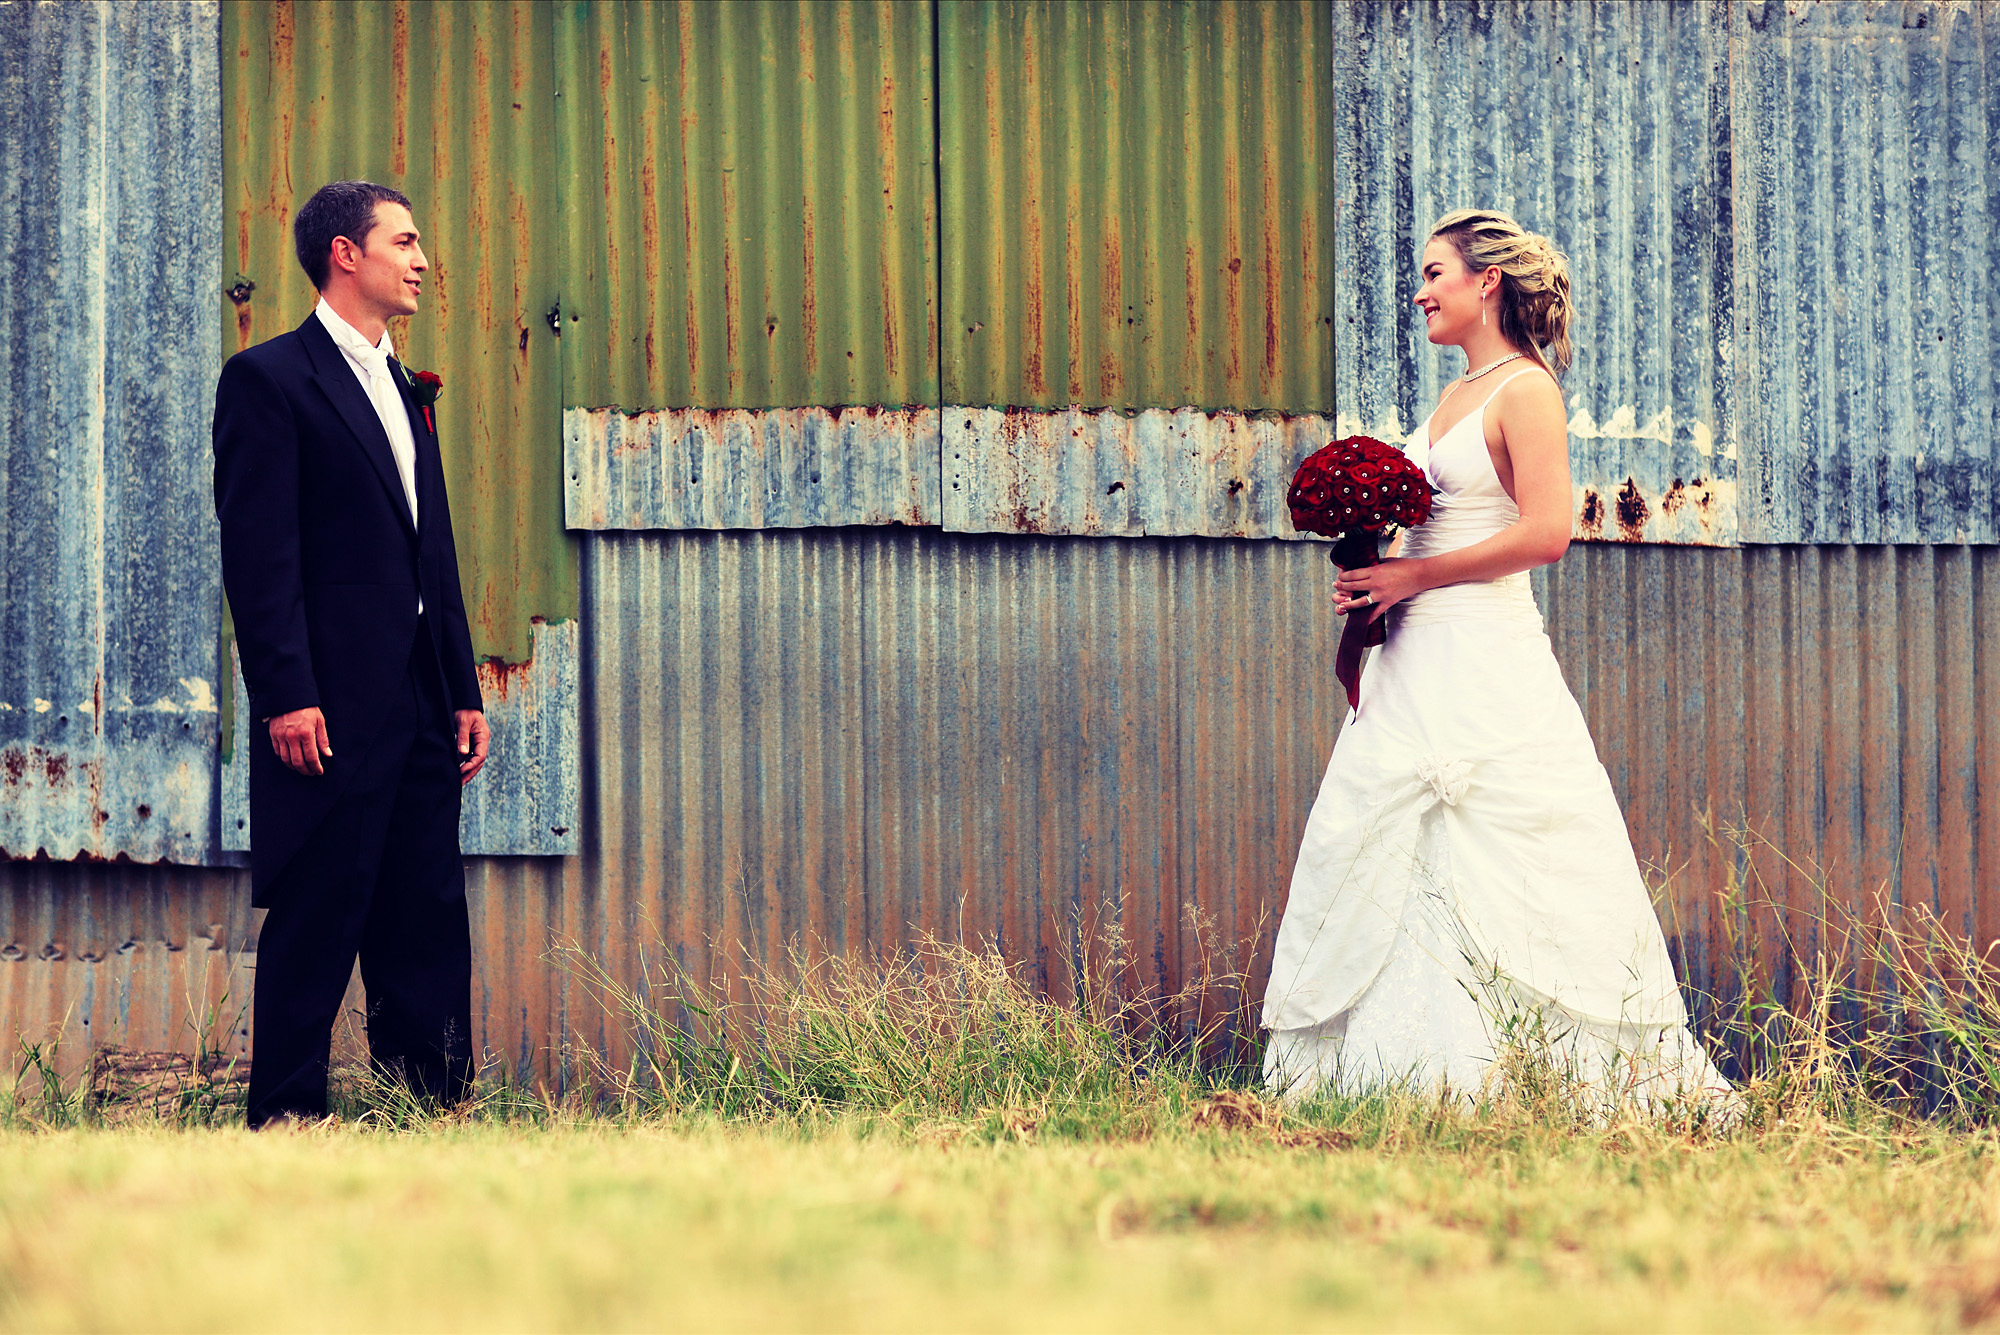 Newlywed photograph